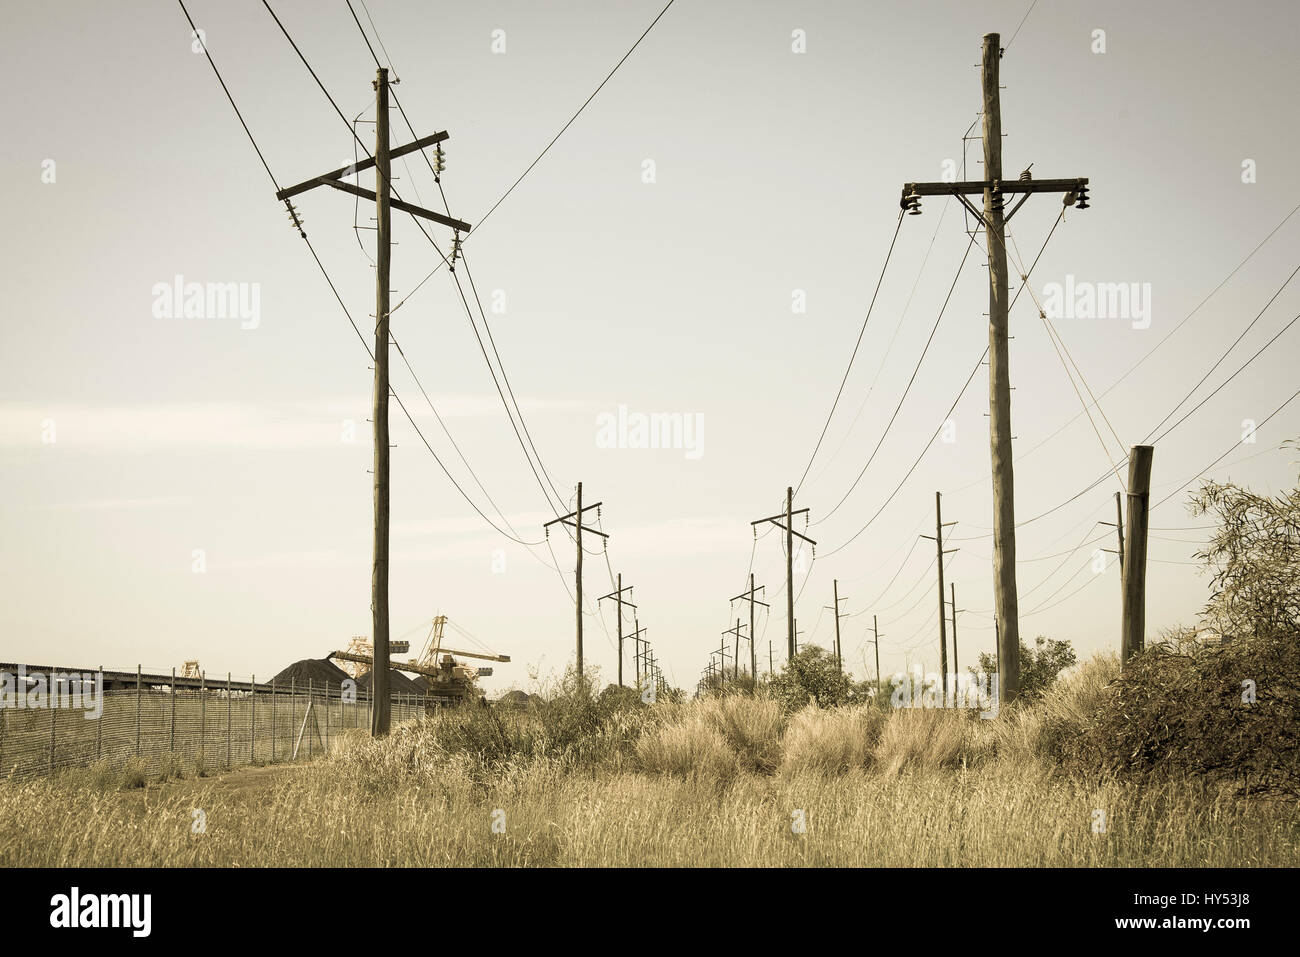 Poles Wires Stock Photos & Poles Wires Stock Images - Alamy